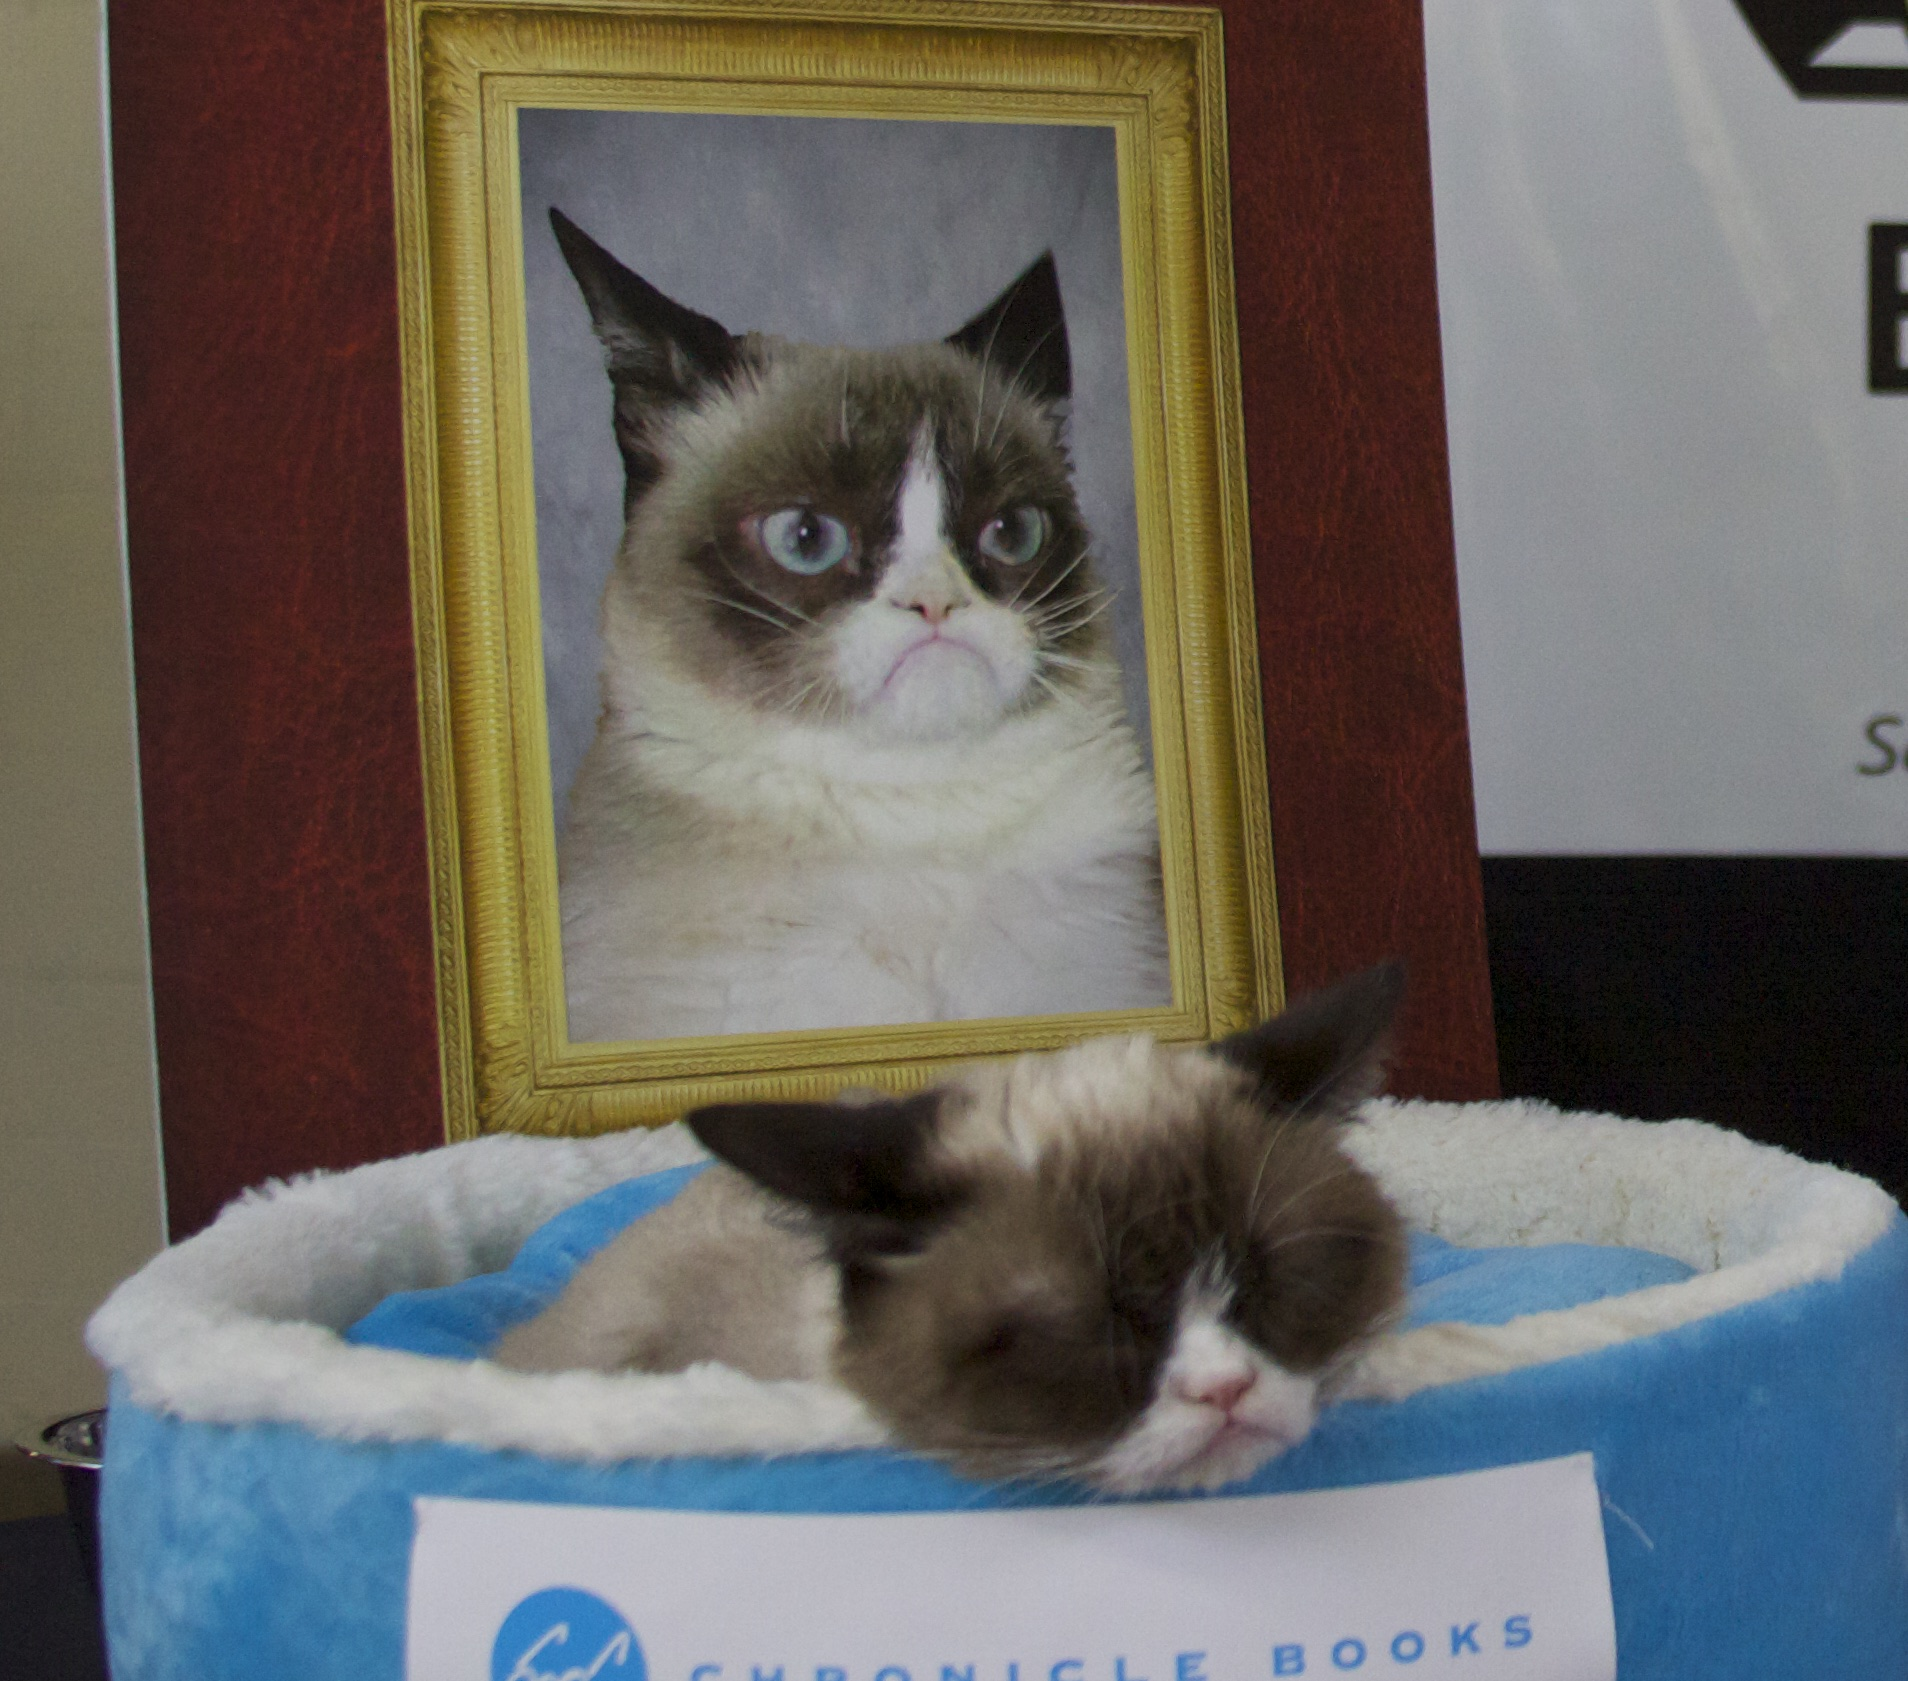 Grumpy Cat Sleeping In Front Of A Photograph Of Herself